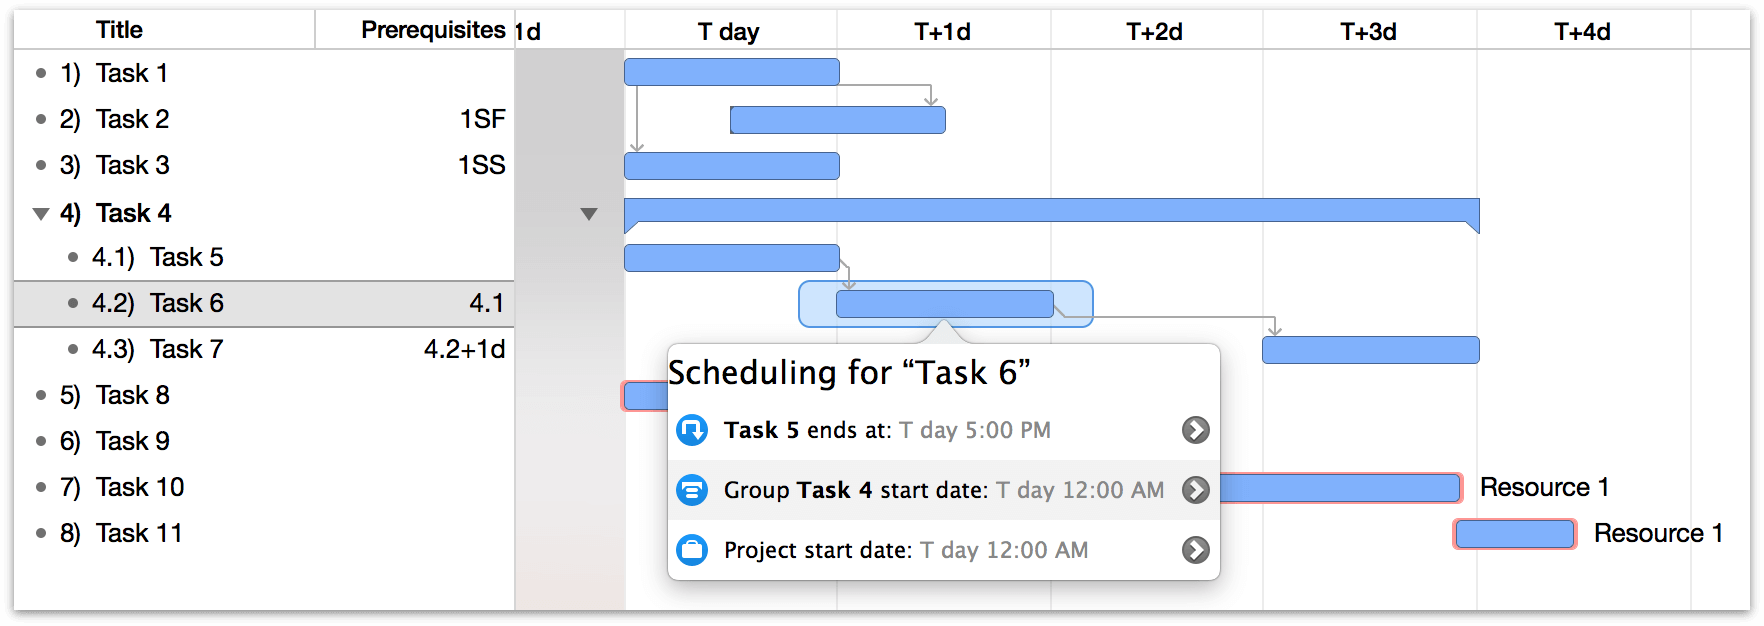 Schedule influences revealed on a task via the popover from the Show Scheduling Influences command.